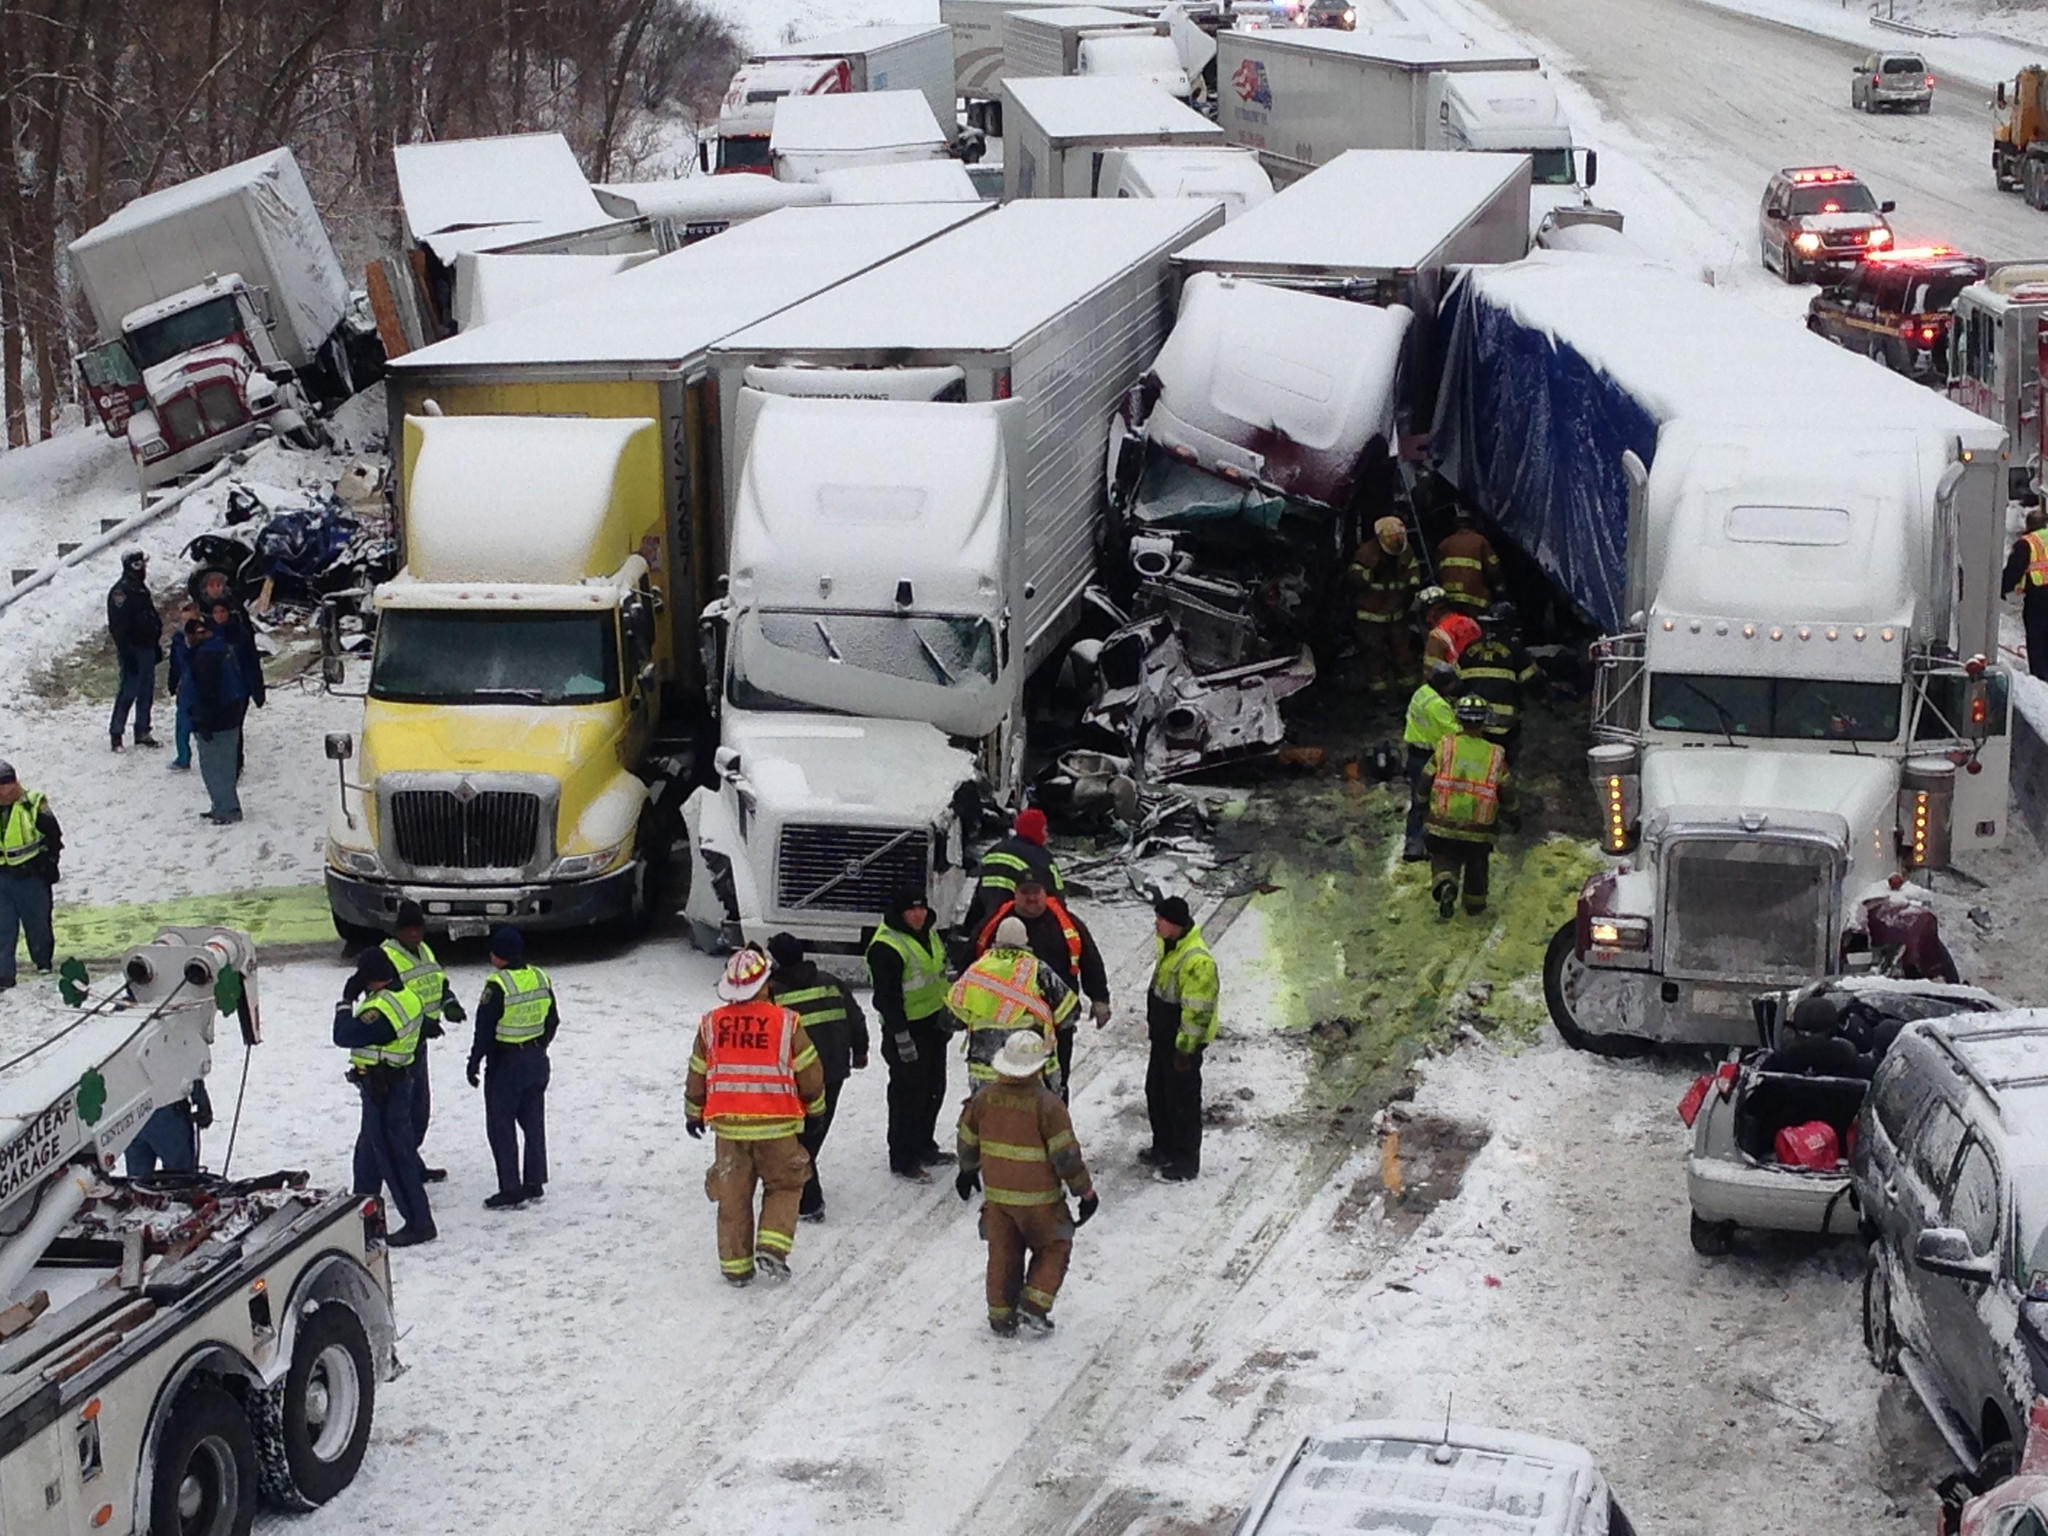 Authorities investigate a multi-vehicle accident on I-94 east of State Road 49 near Chesterton, Ind. Three people died and at least 20 were injured.